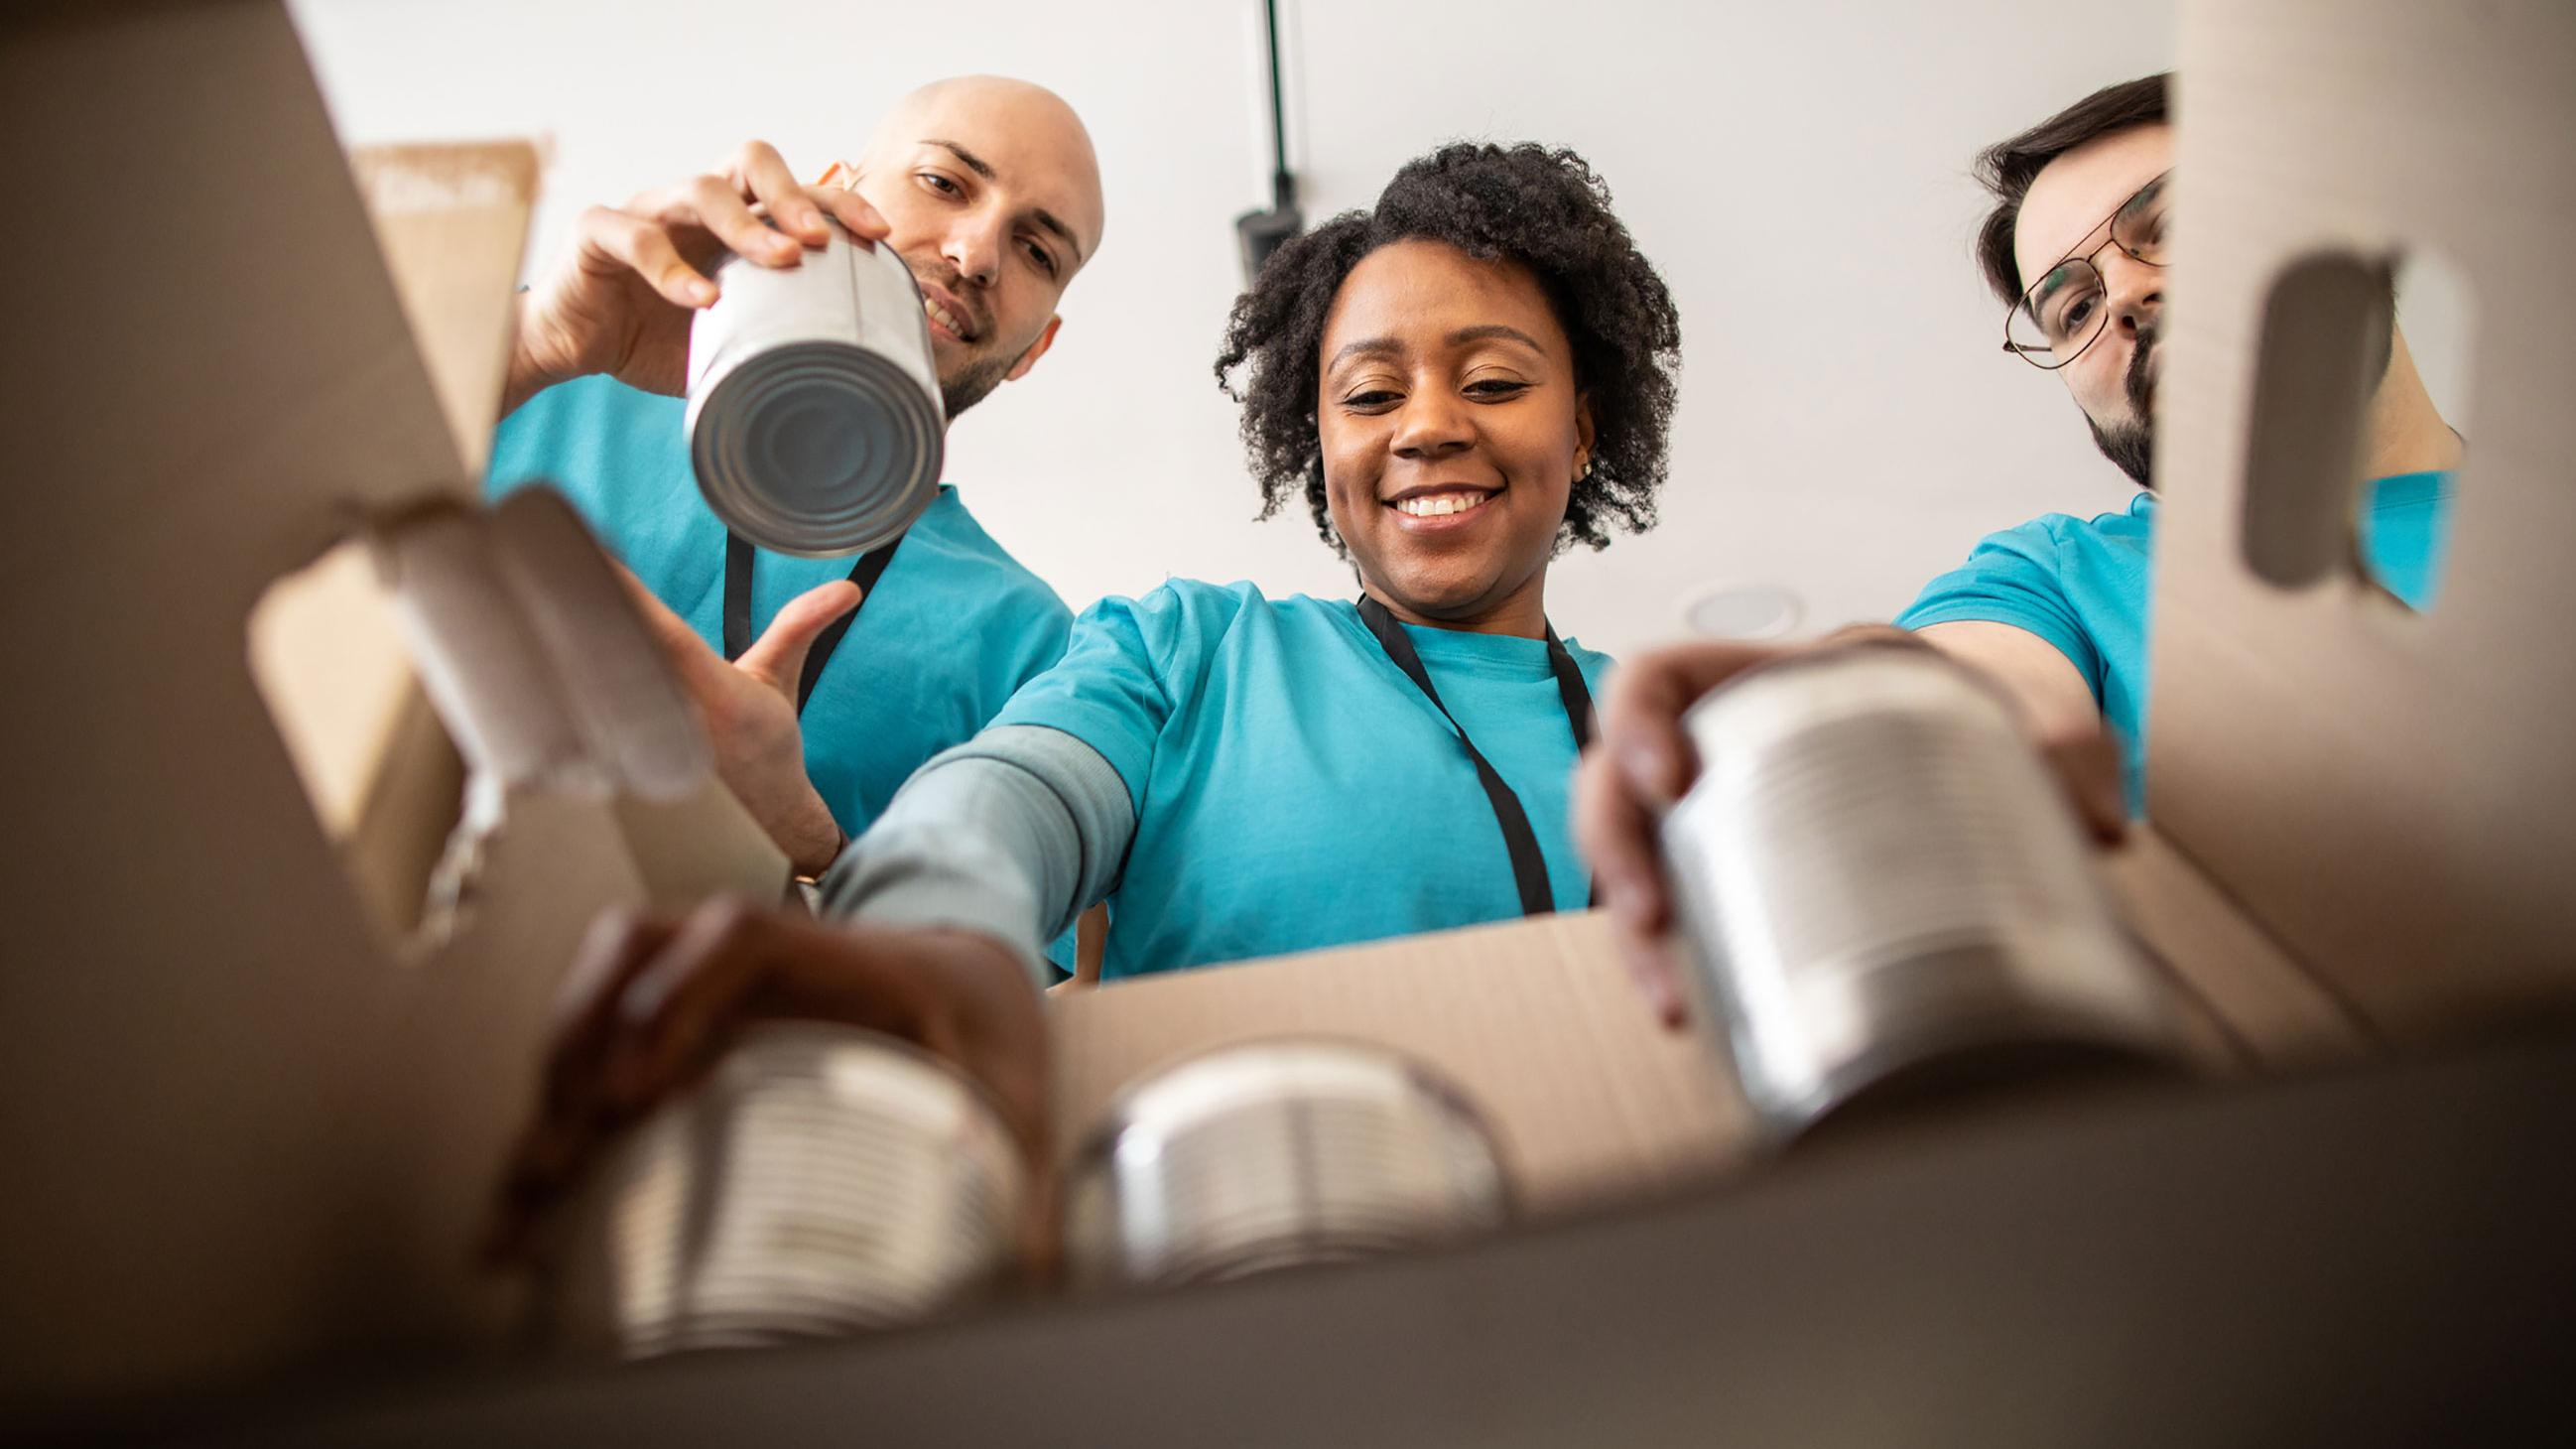 Three people happily loading cans into a box